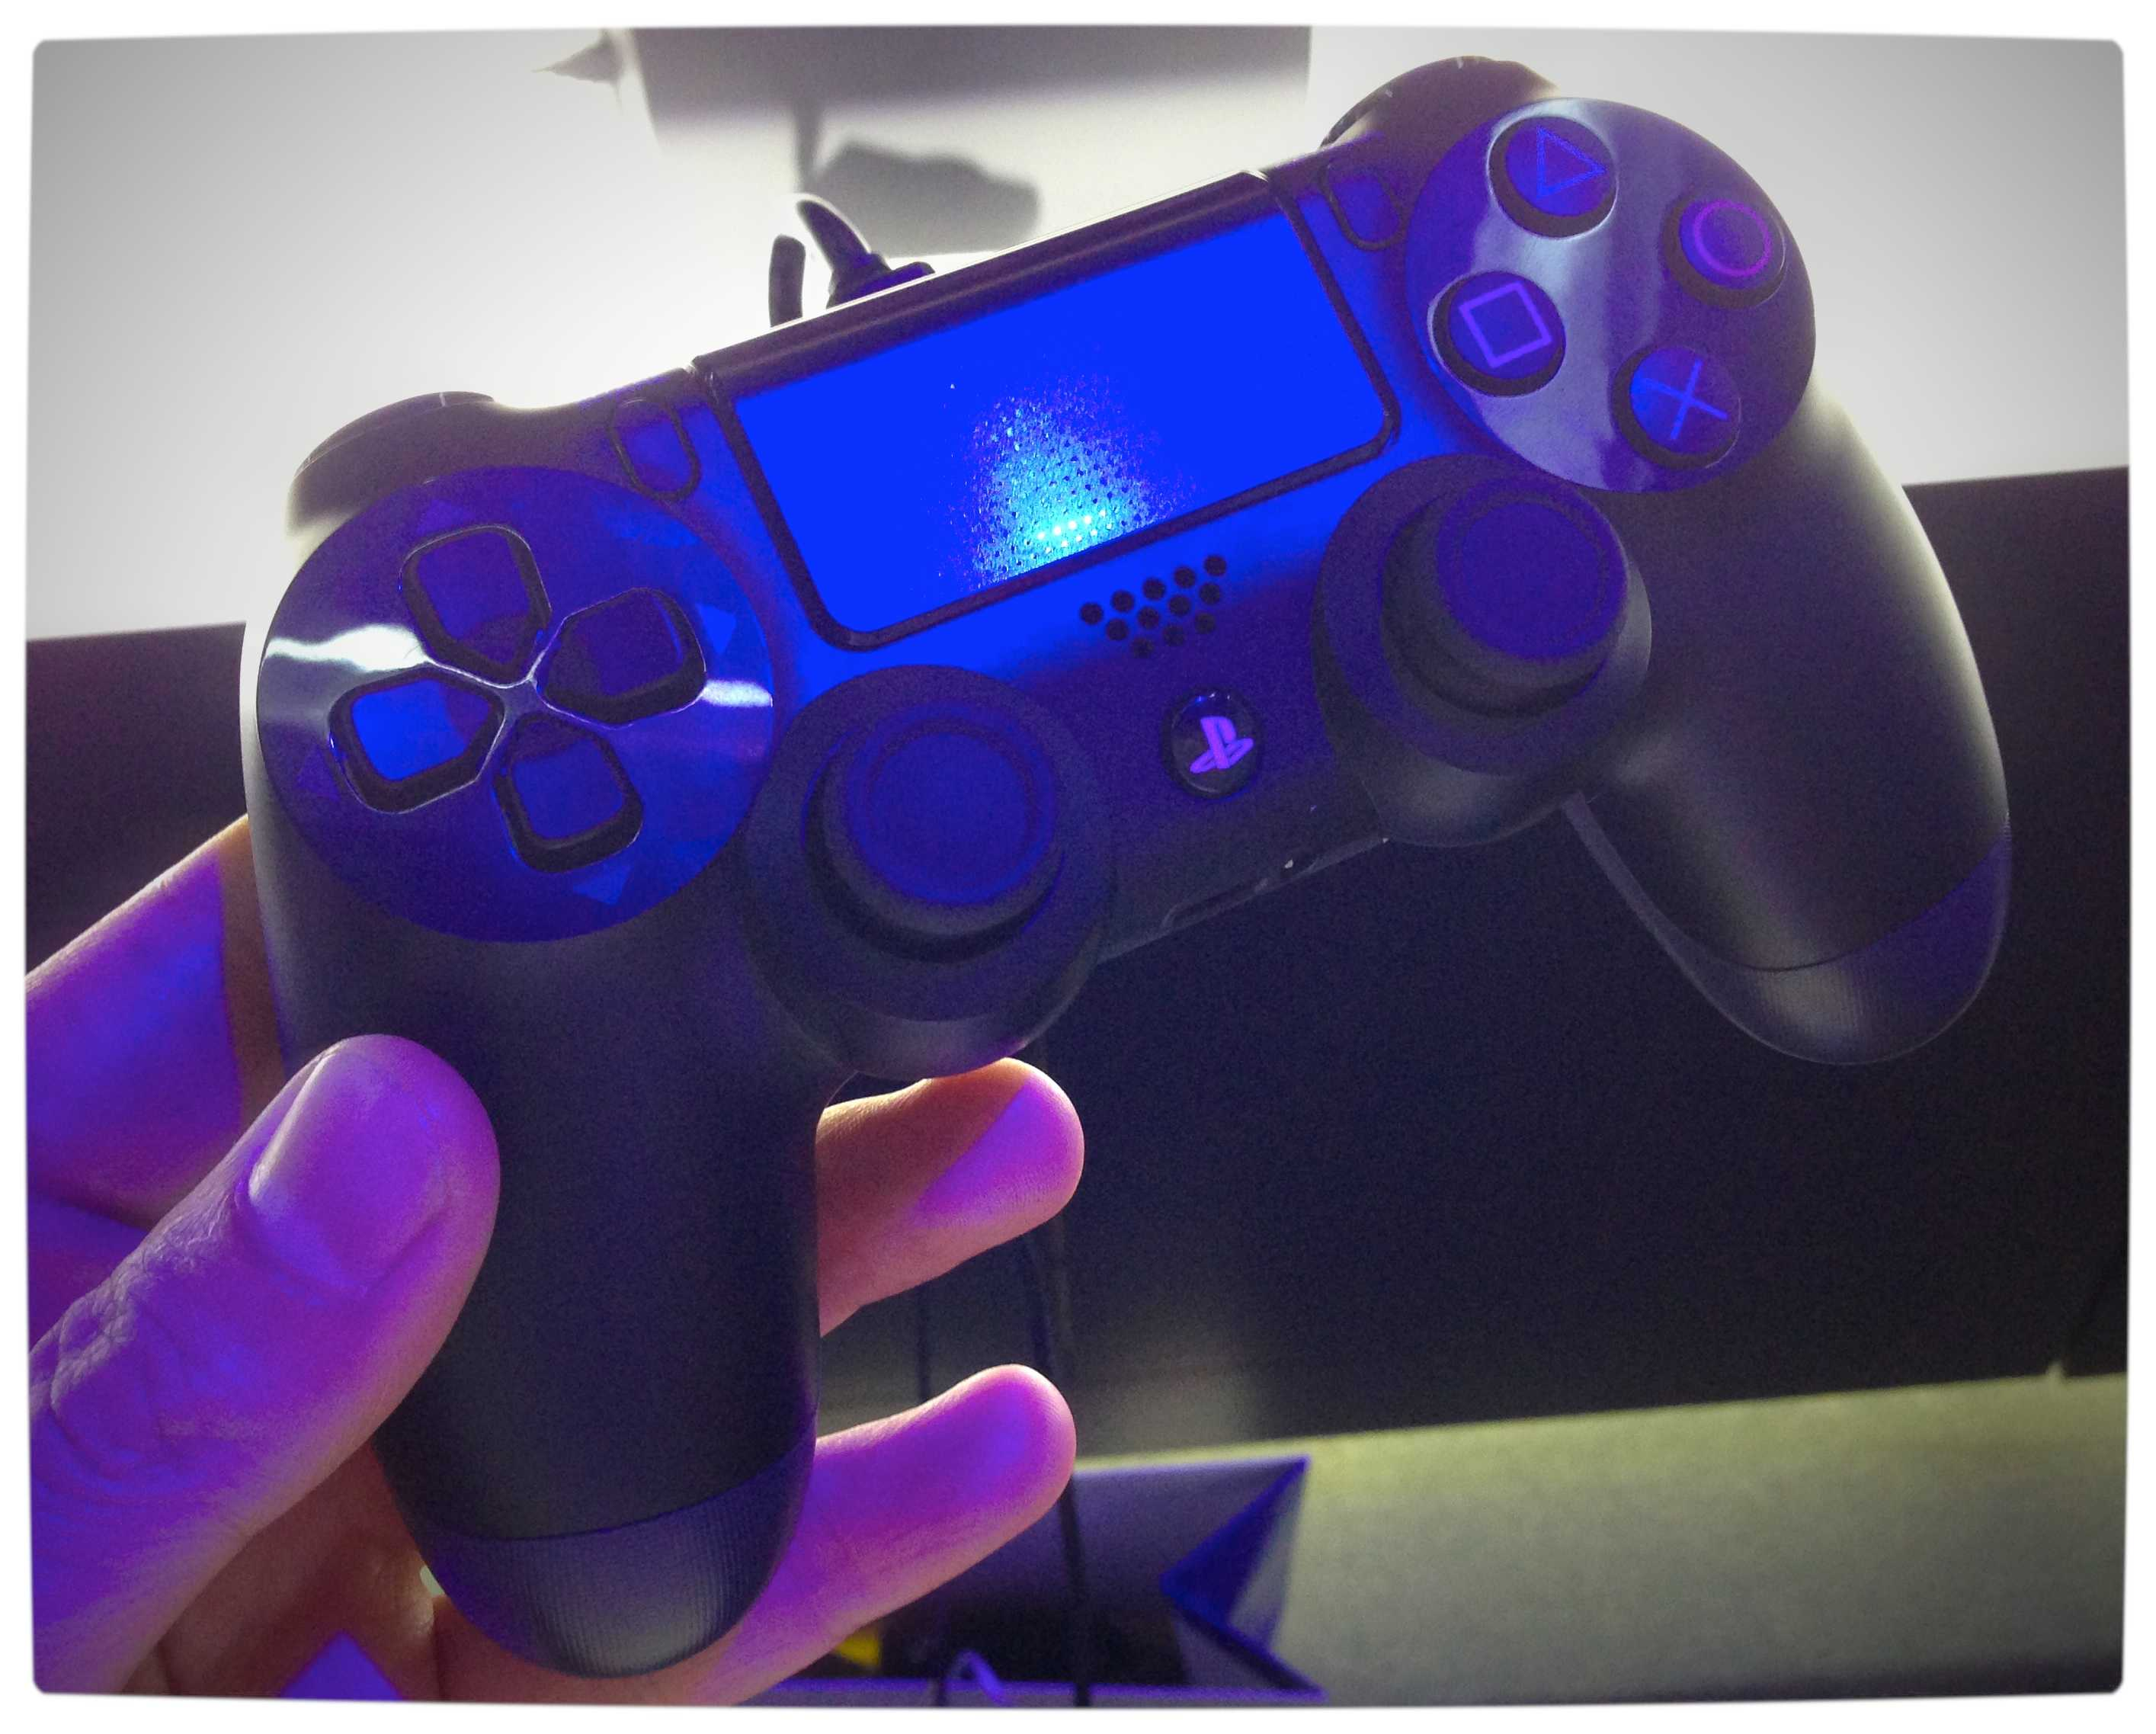 Vamers - Games - Sony's DualShock 4 - Hands-On - The DualShock 4 - In-Hand